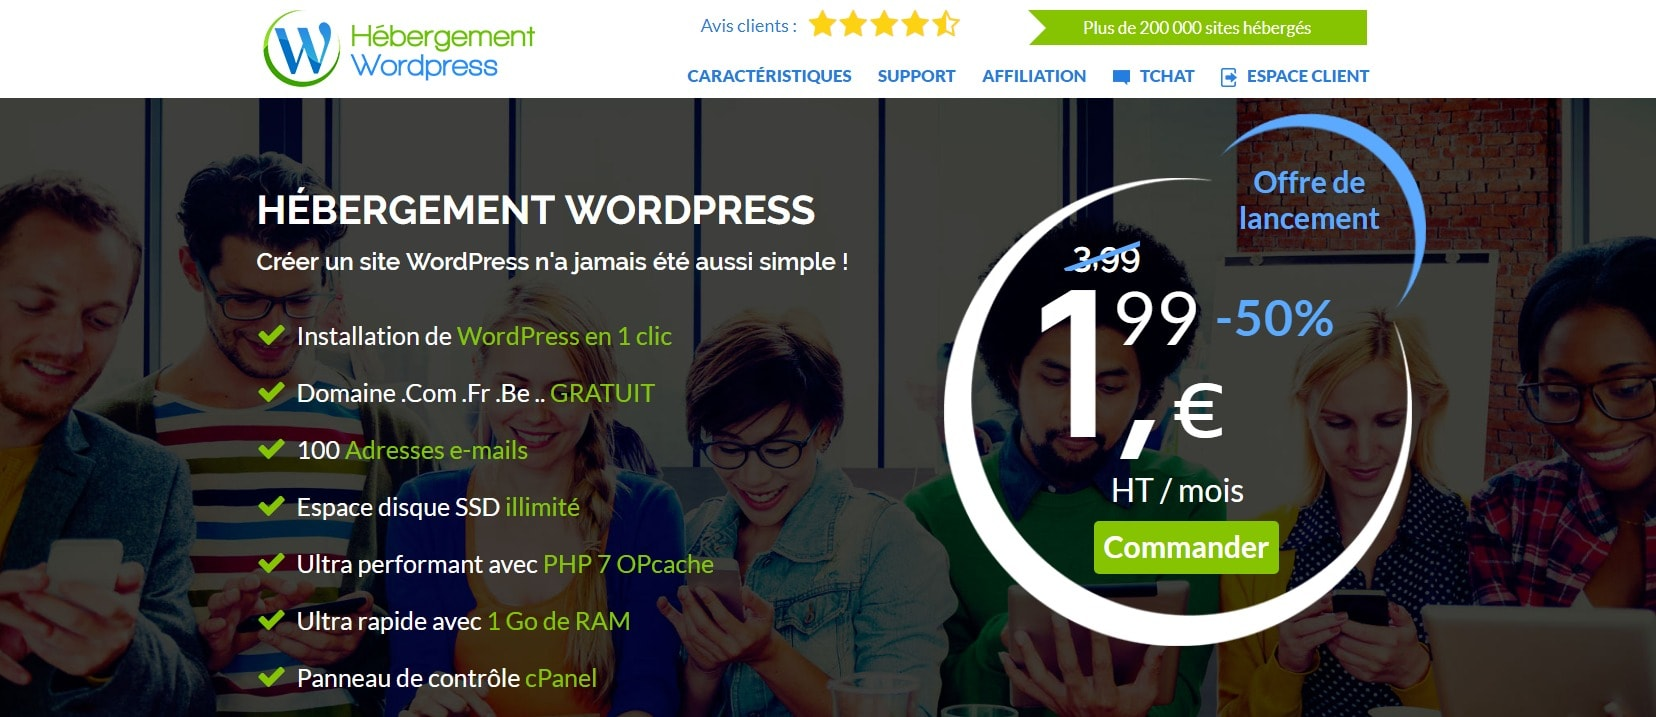 hebergement-wordpress